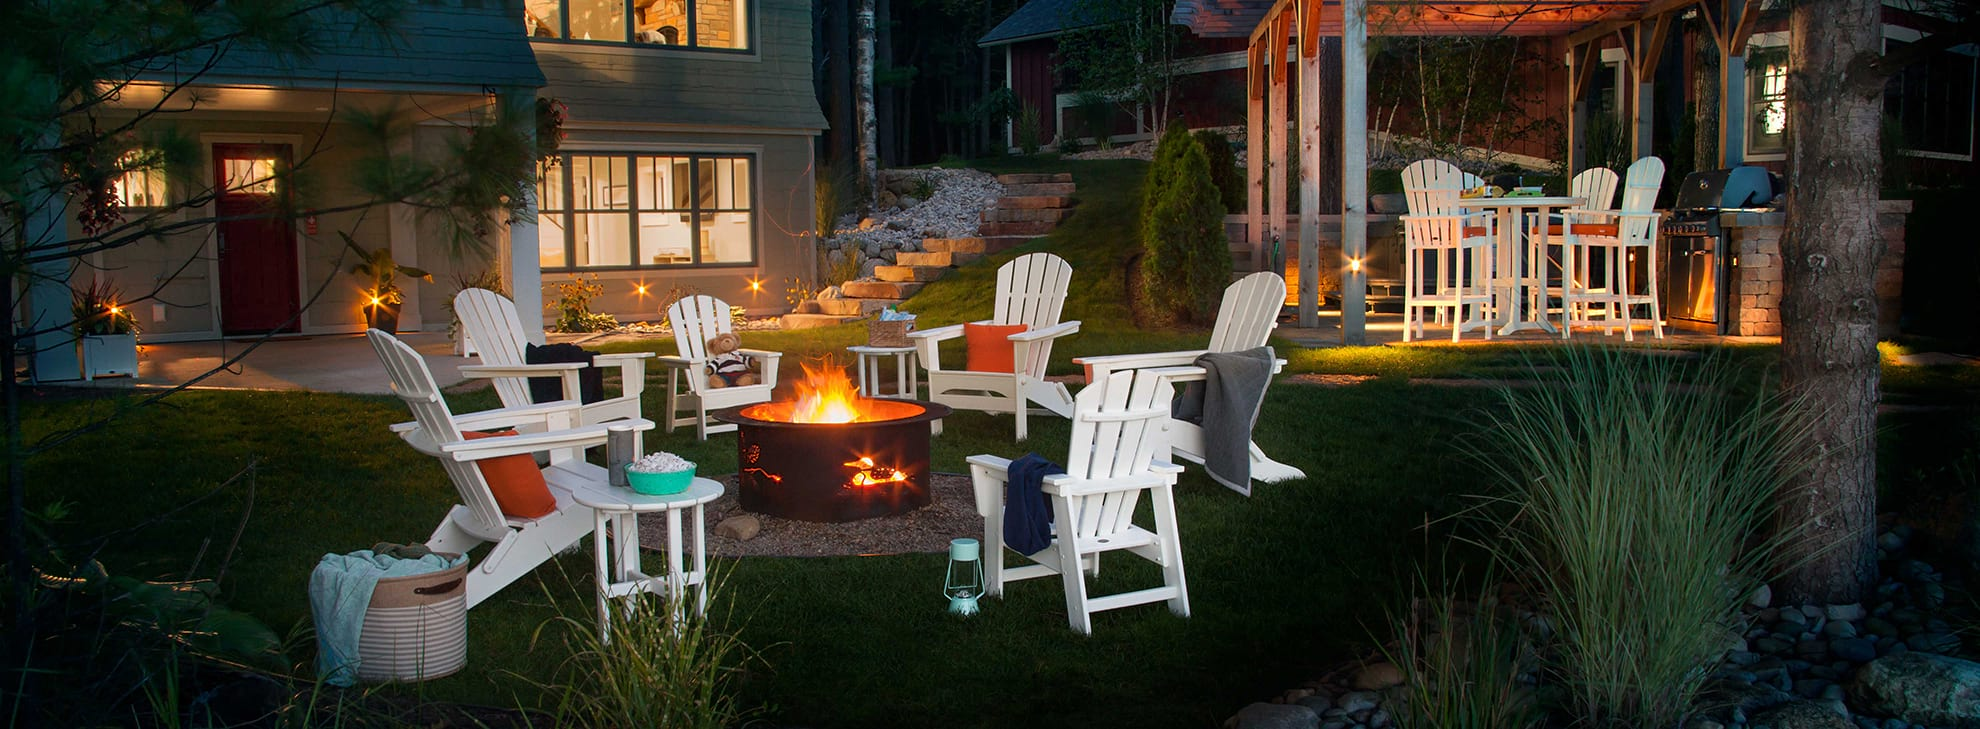 Palm Coast chairs around a firepit